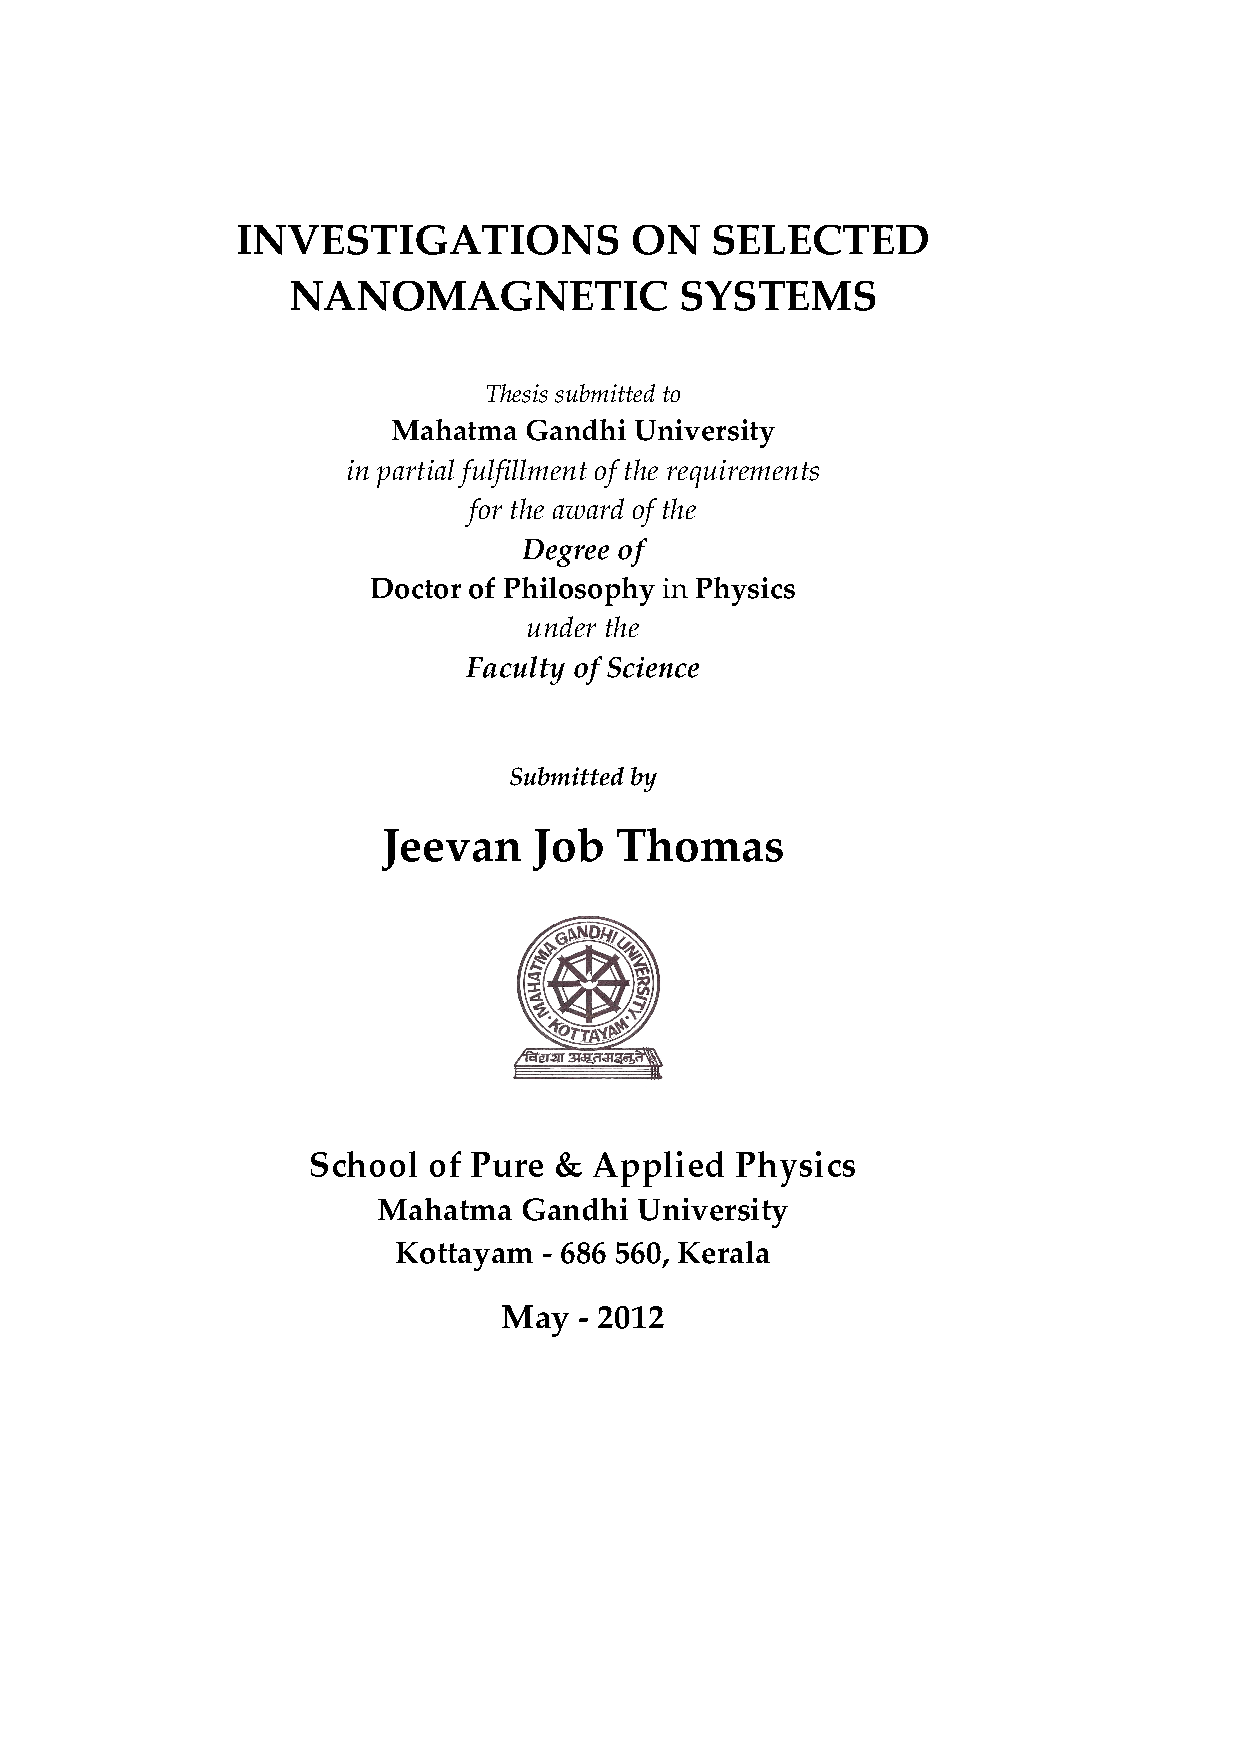 university of trento phd thesis Etusivu